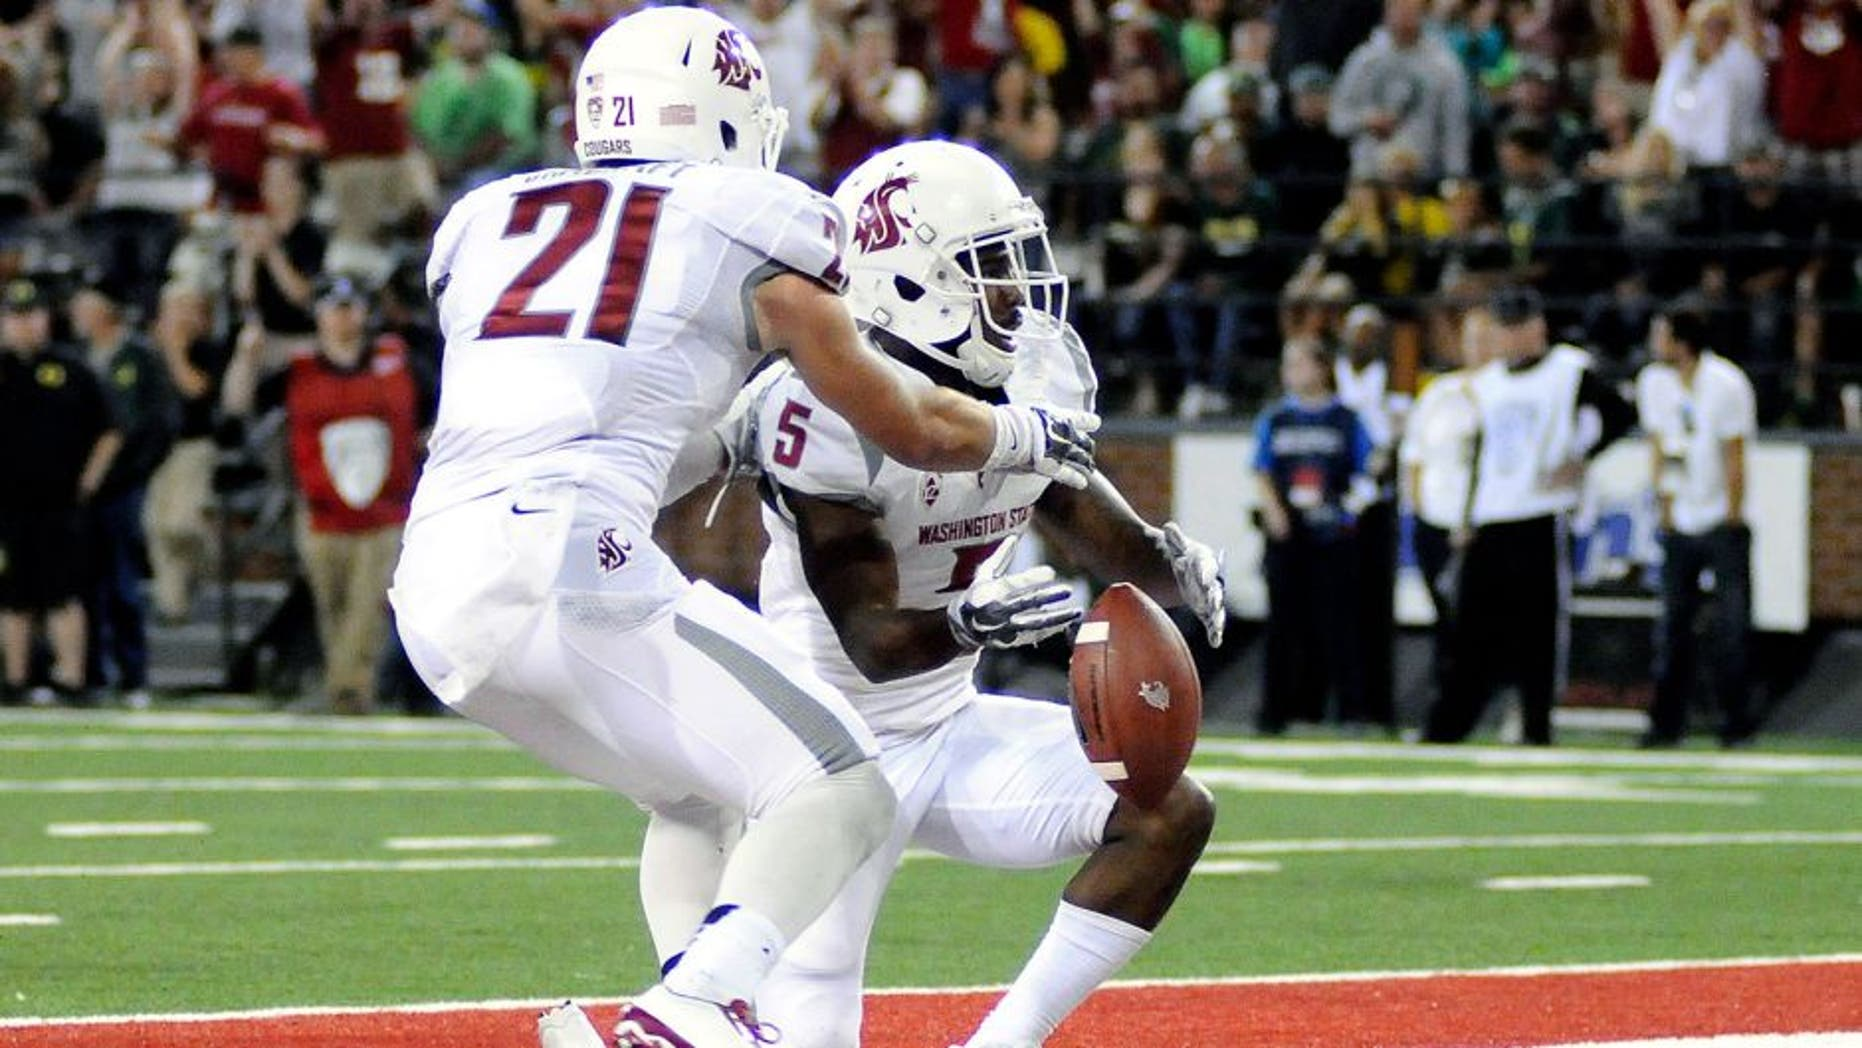 Sep 20, 2014; Pullman, WA, USA; Washington State Cougars wide receiver Rickey Galvin (5) and wide receiver River Cracraft (21) celebrate a touchdown against the Oregon Ducks during the first half at Martin Stadium. Mandatory Credit: James Snook-USA TODAY Sports